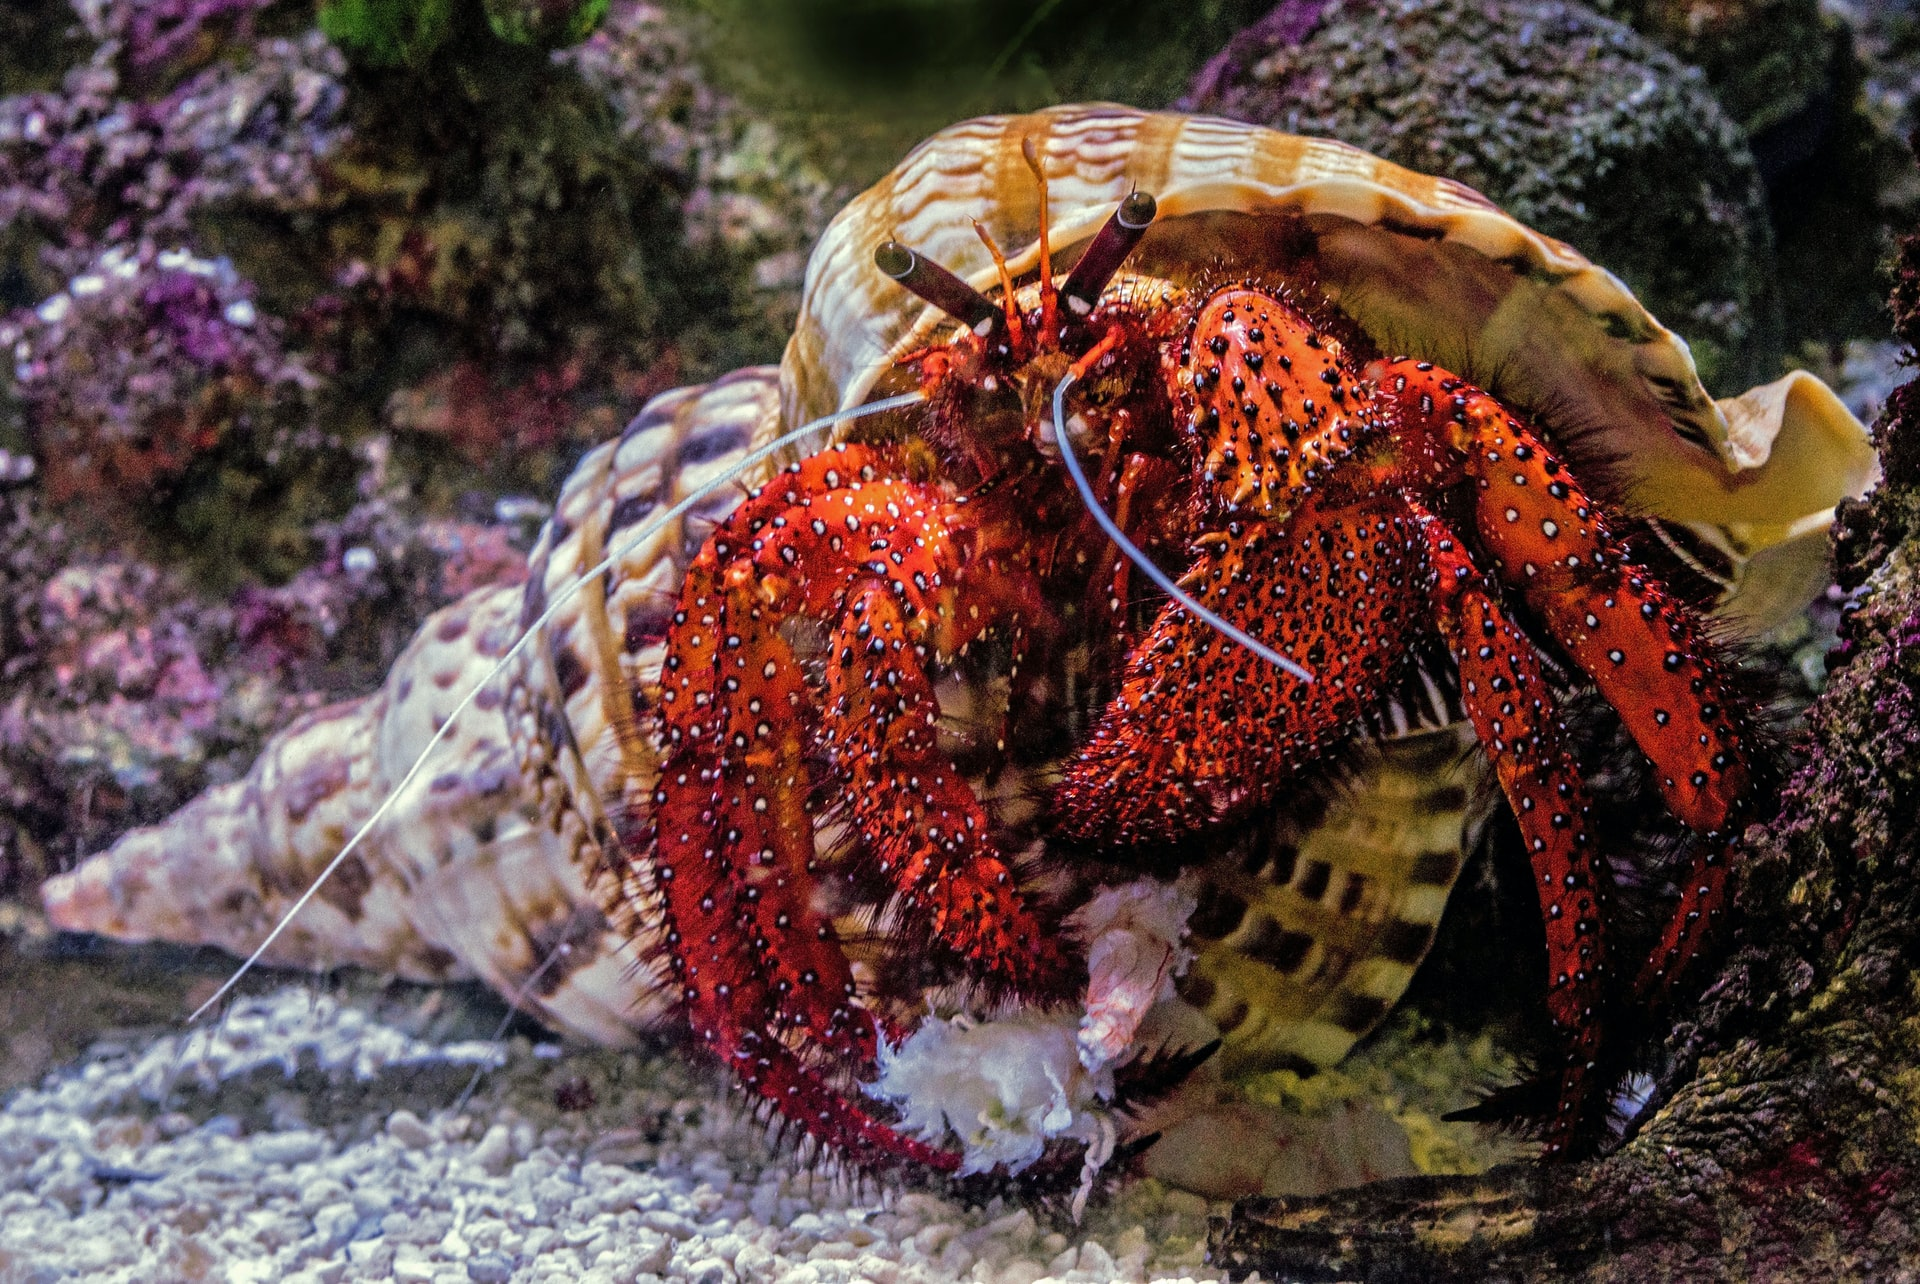 Discover good hermit crab names for your new pet.